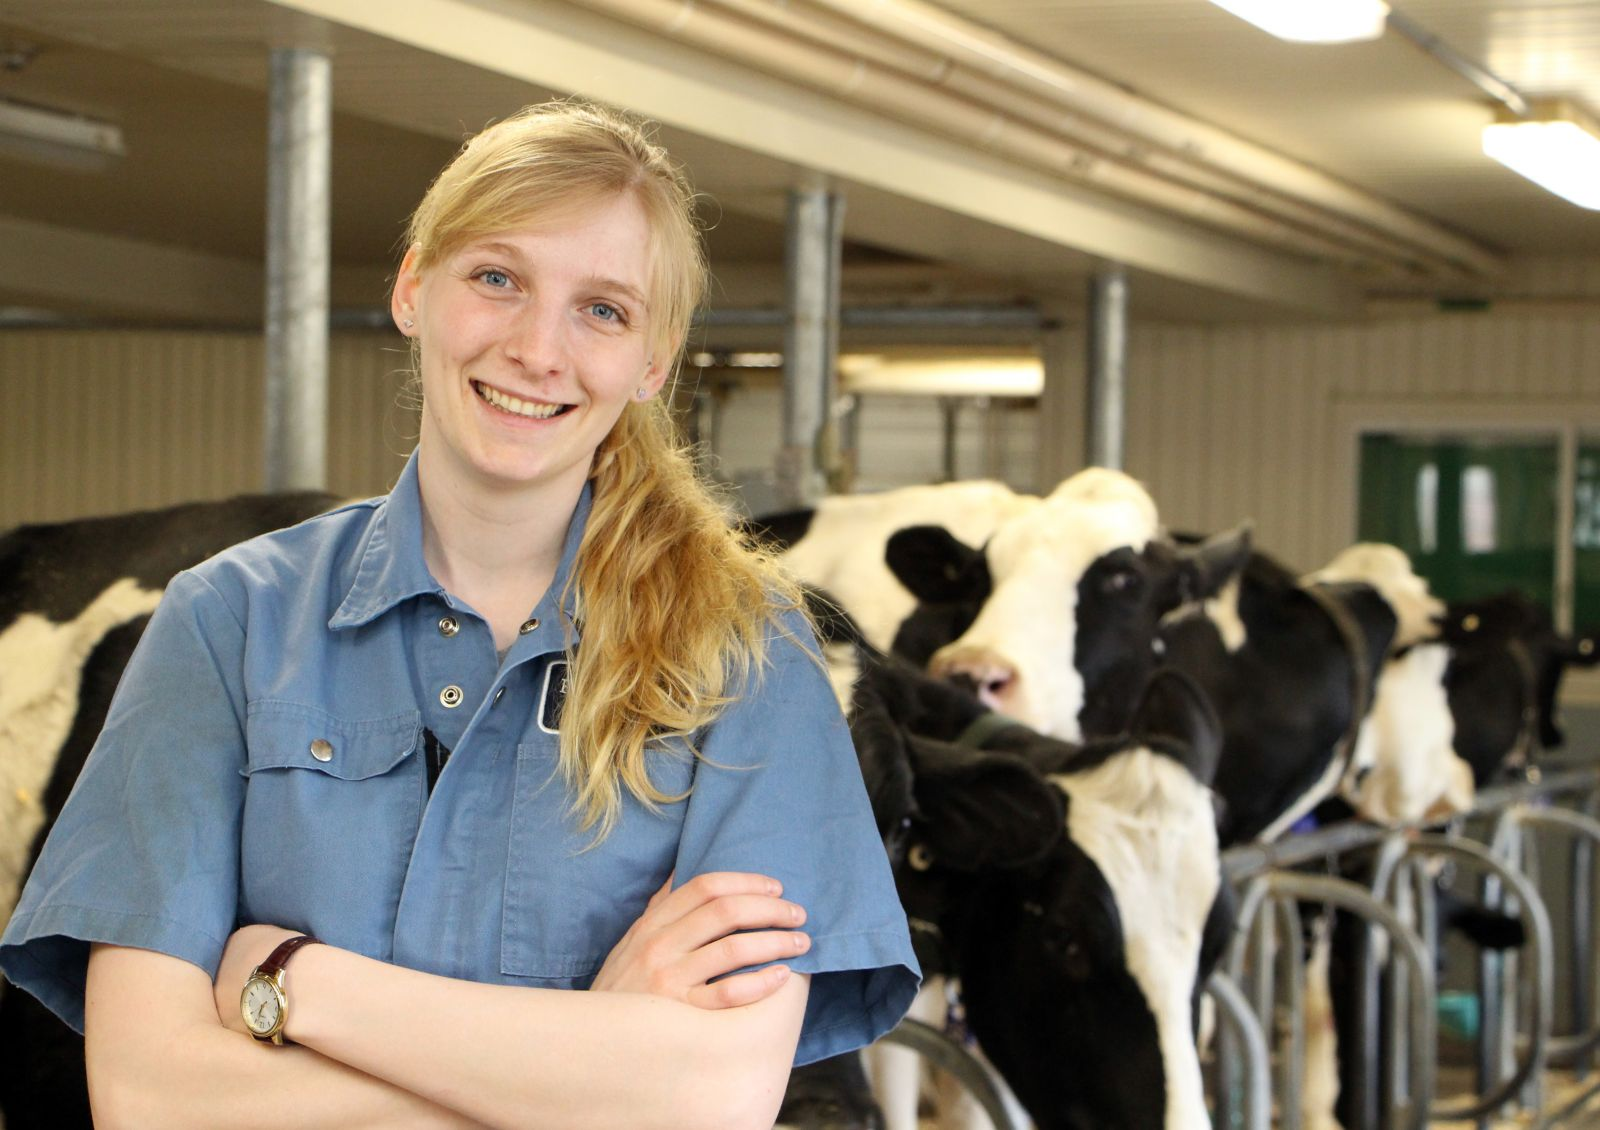 Ontario Veterinary College at the University of Guelph student Rose Rumney achieved the highest possible result on the North American Veterinary Licensing Exam.